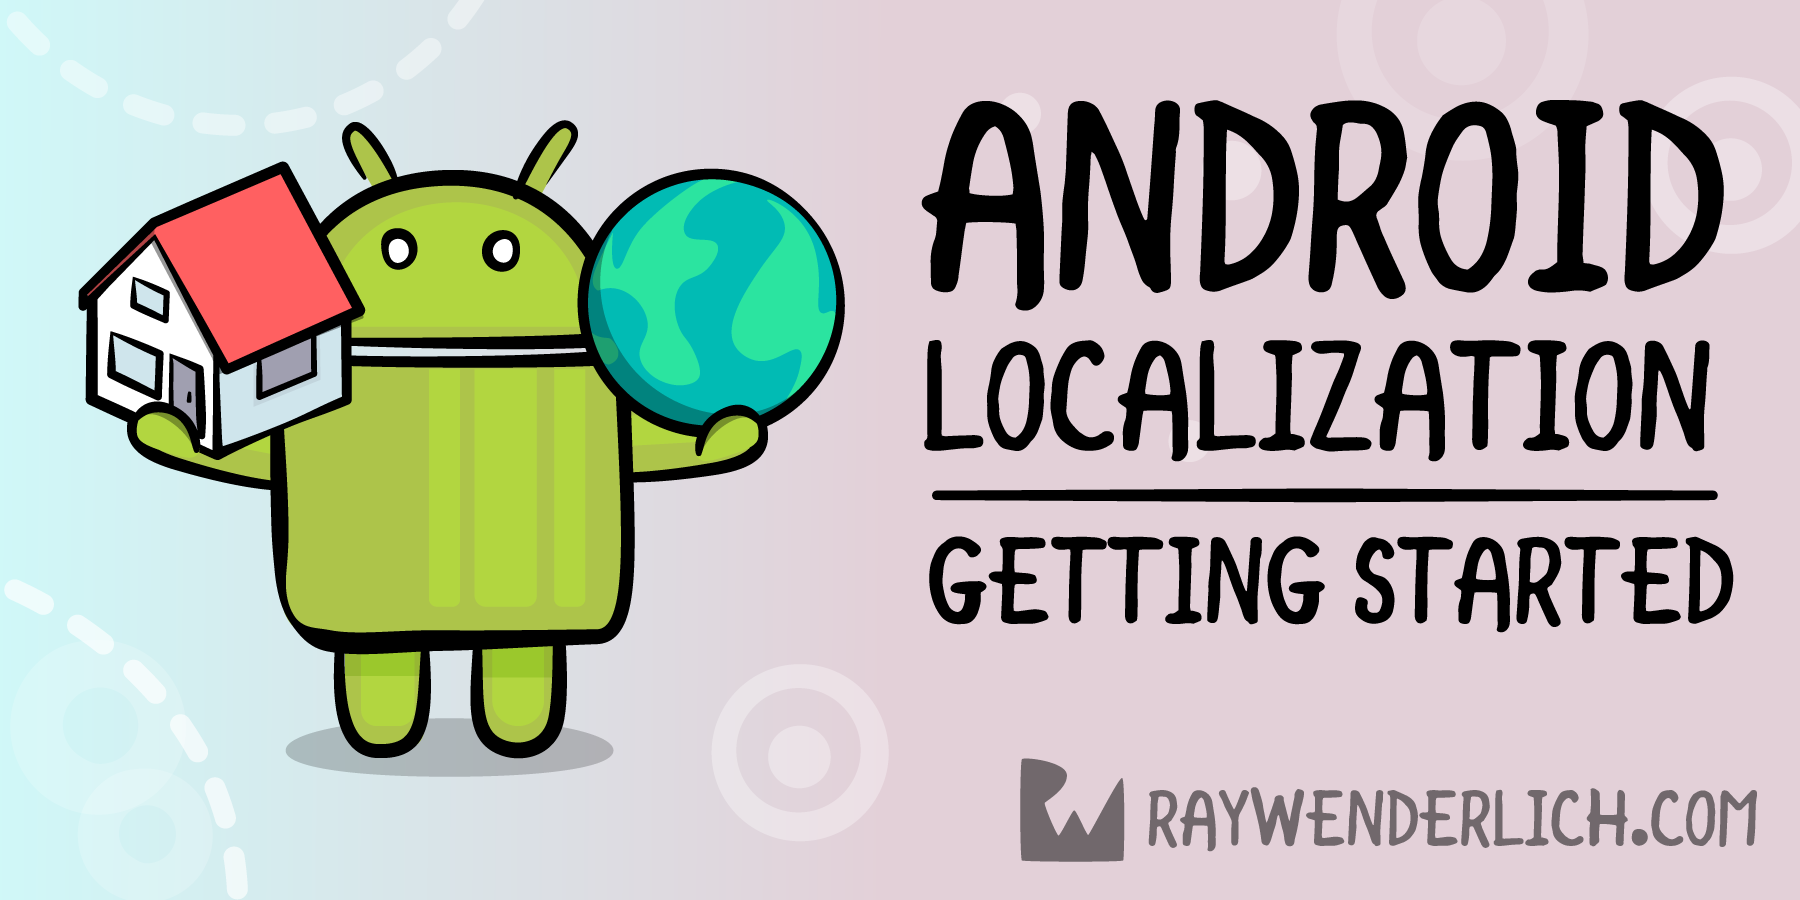 Android Localization: Getting Started [FREE]